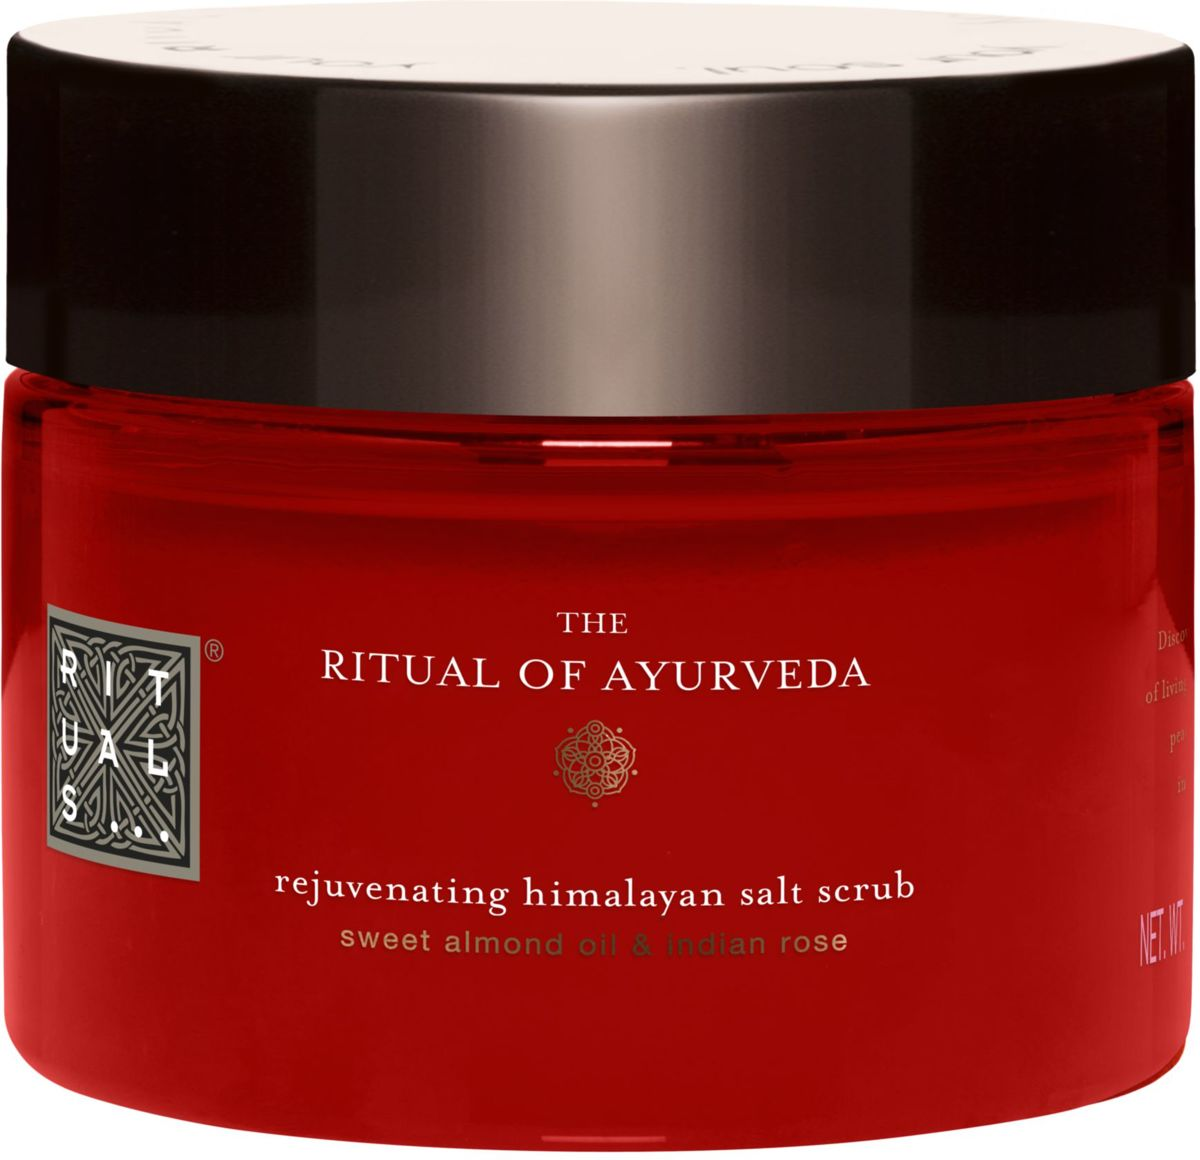 The Ritual of Ayurveda Body Scrub